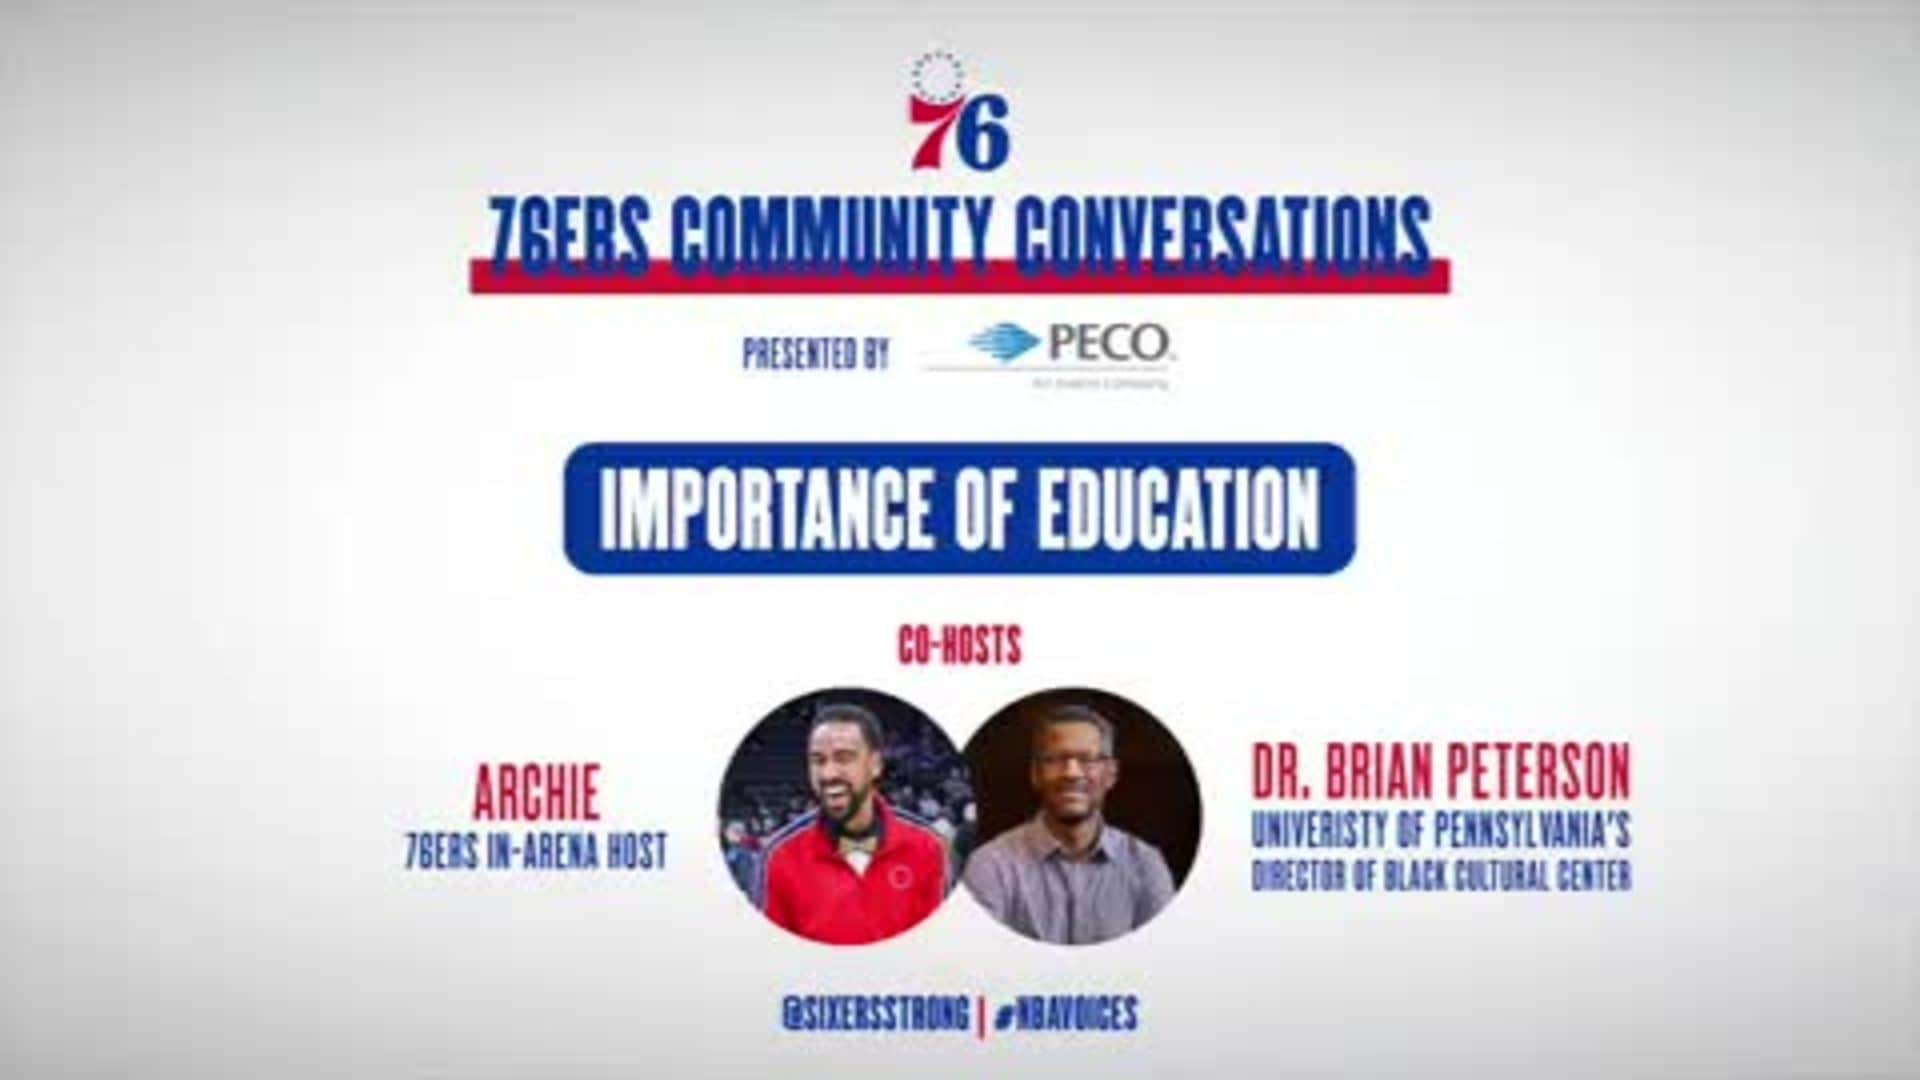 76ers Community Conversations | Importance of Education